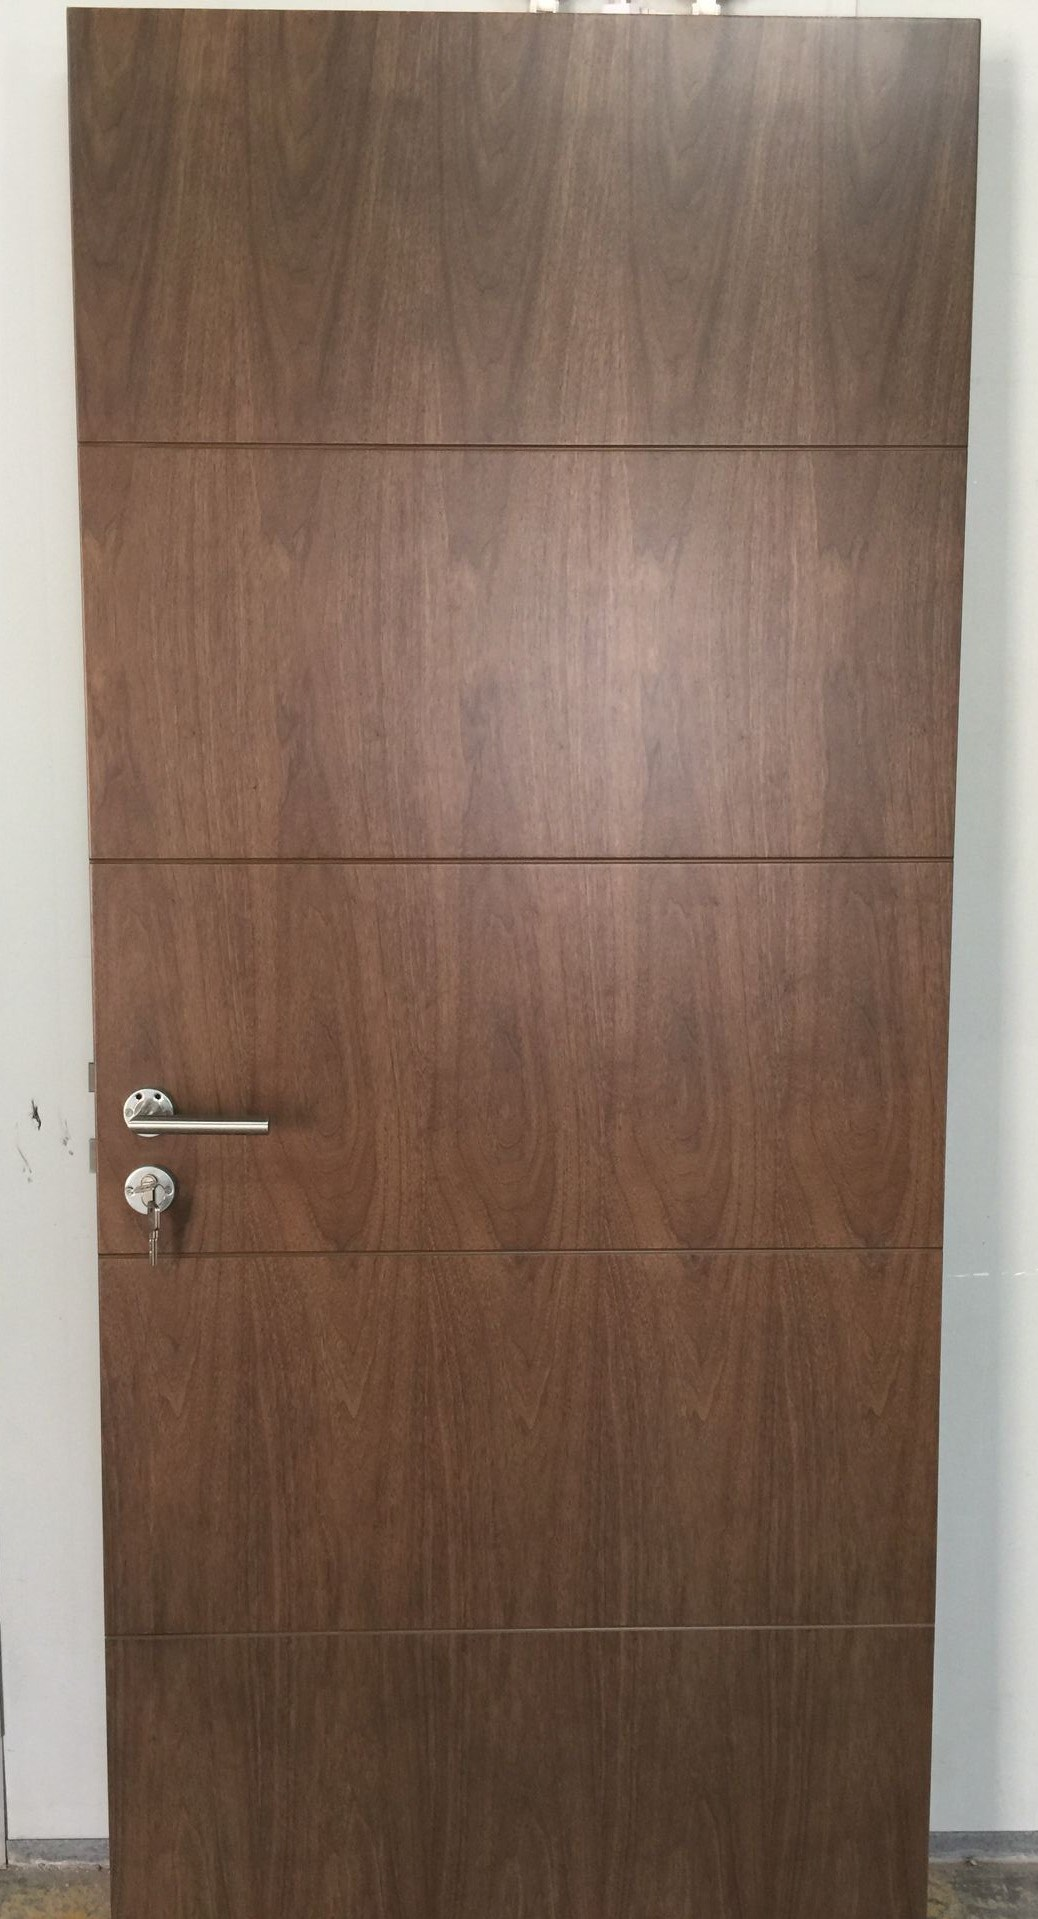 Black Walnut Fire Rated Wood Door, Interior Wooden Door (Interior Door)